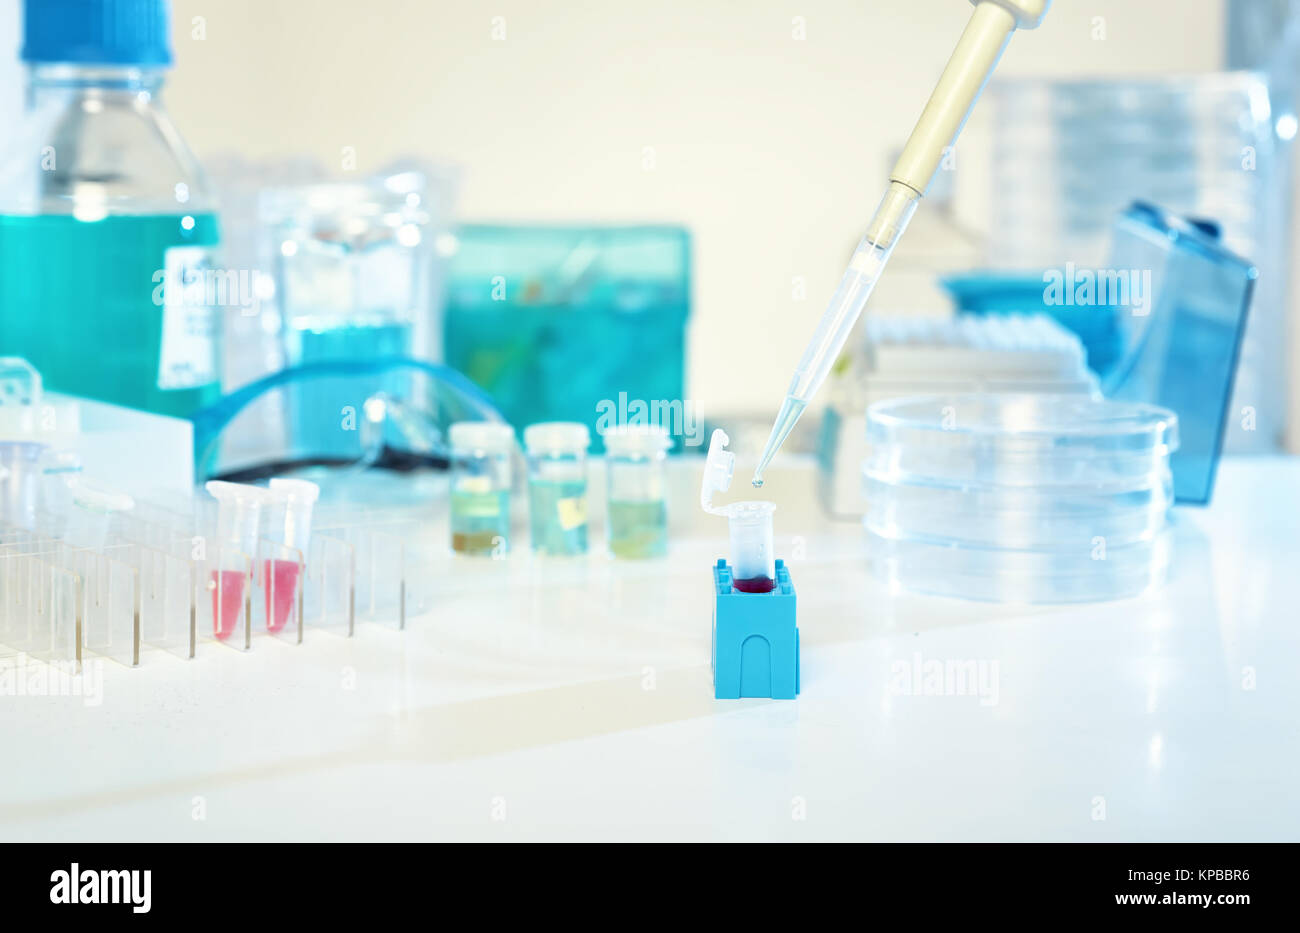 Scientific background. Automatic pipette, loading of liquid sample into plastic tube. This image is toned. Stock Photo